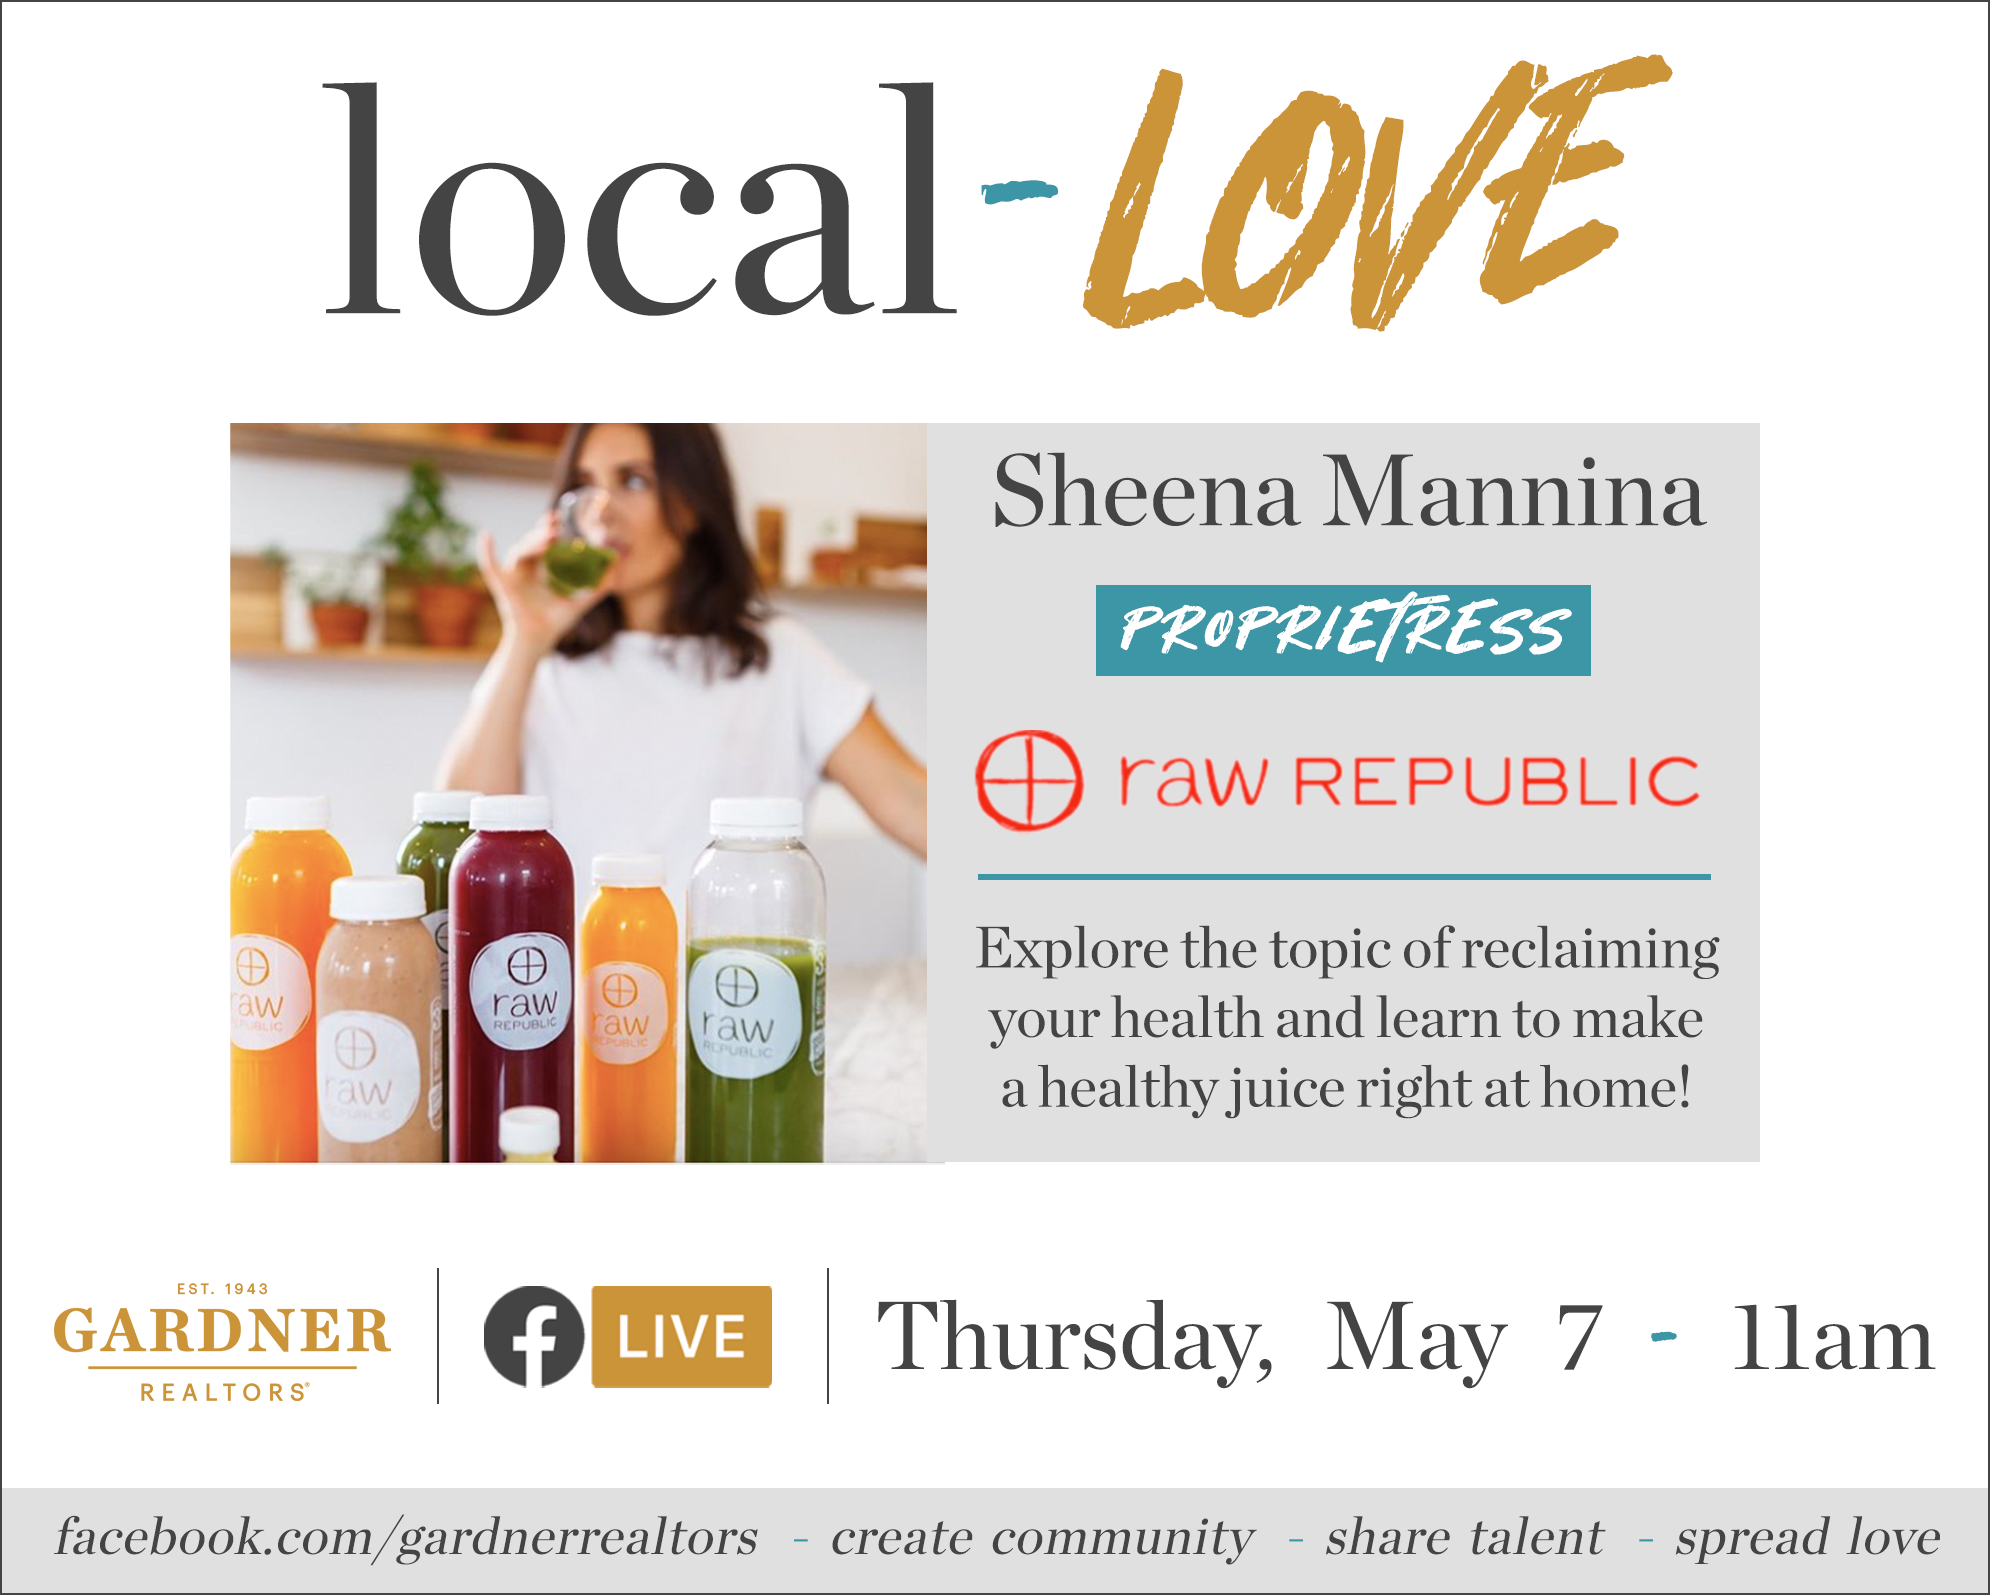 local love - sheena